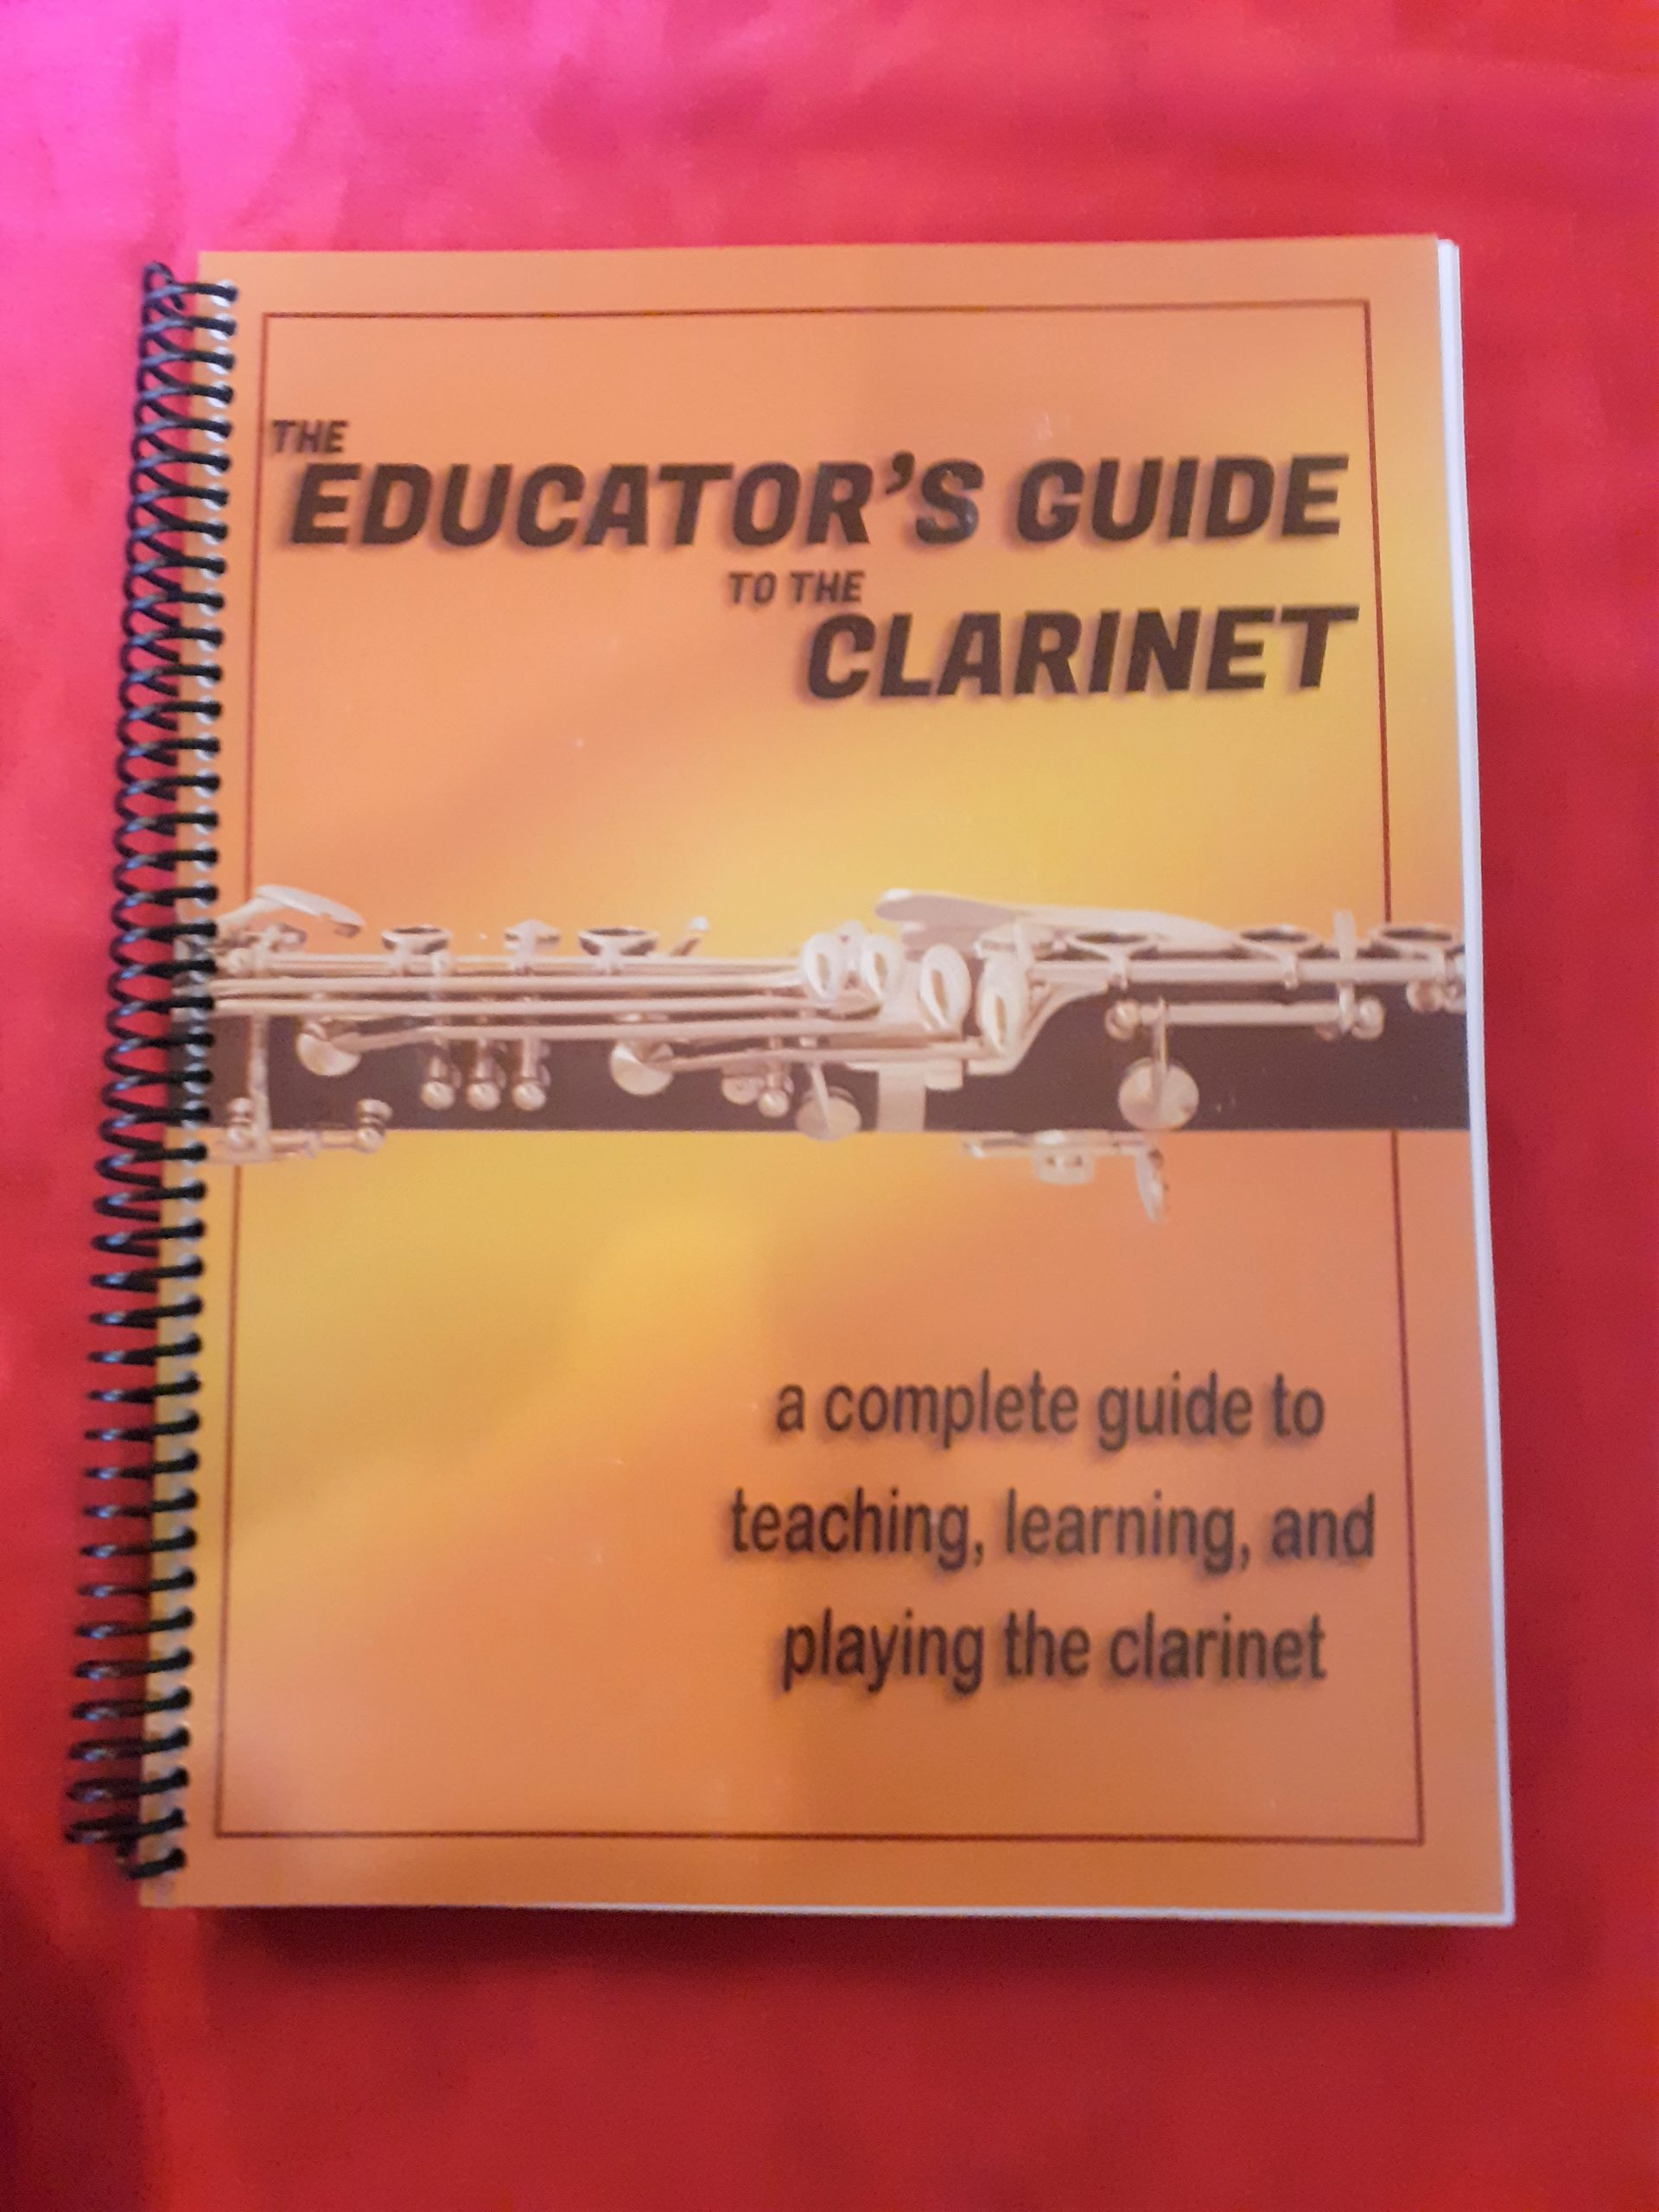 The latest edition of the Educator's Guide